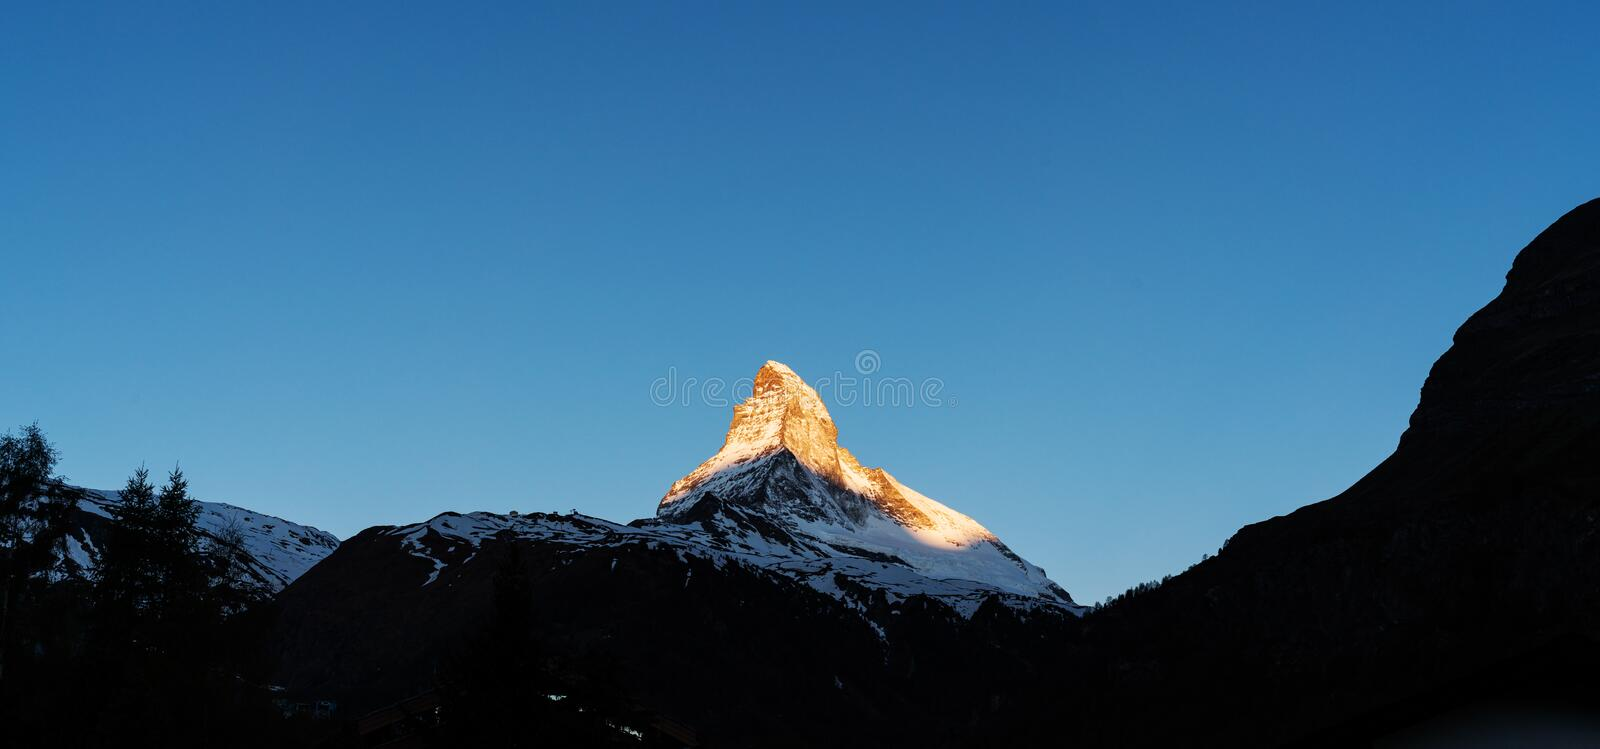 Panoramic, Matterhorn mountain with sunlight on peak in the morning, view at Zermatt Switzerland stock images